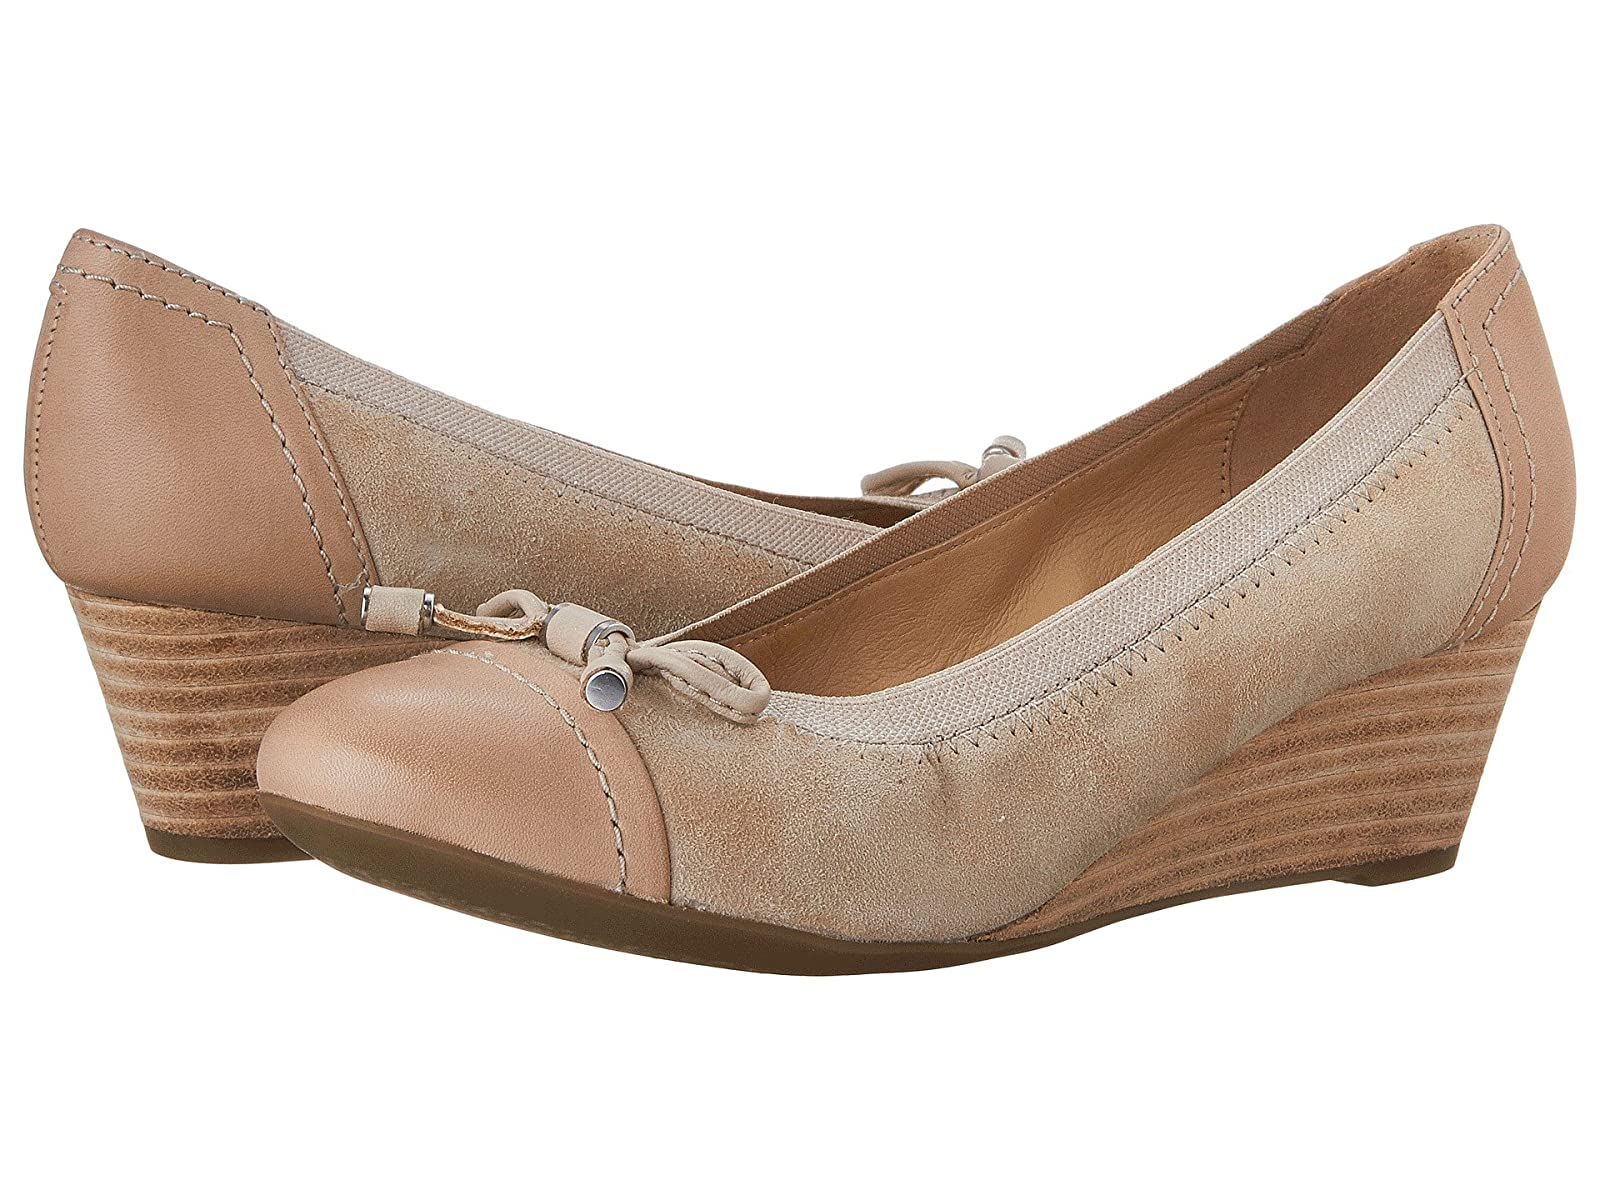 Geox W FLORALIE 21Cheap and distinctive eye-catching shoes